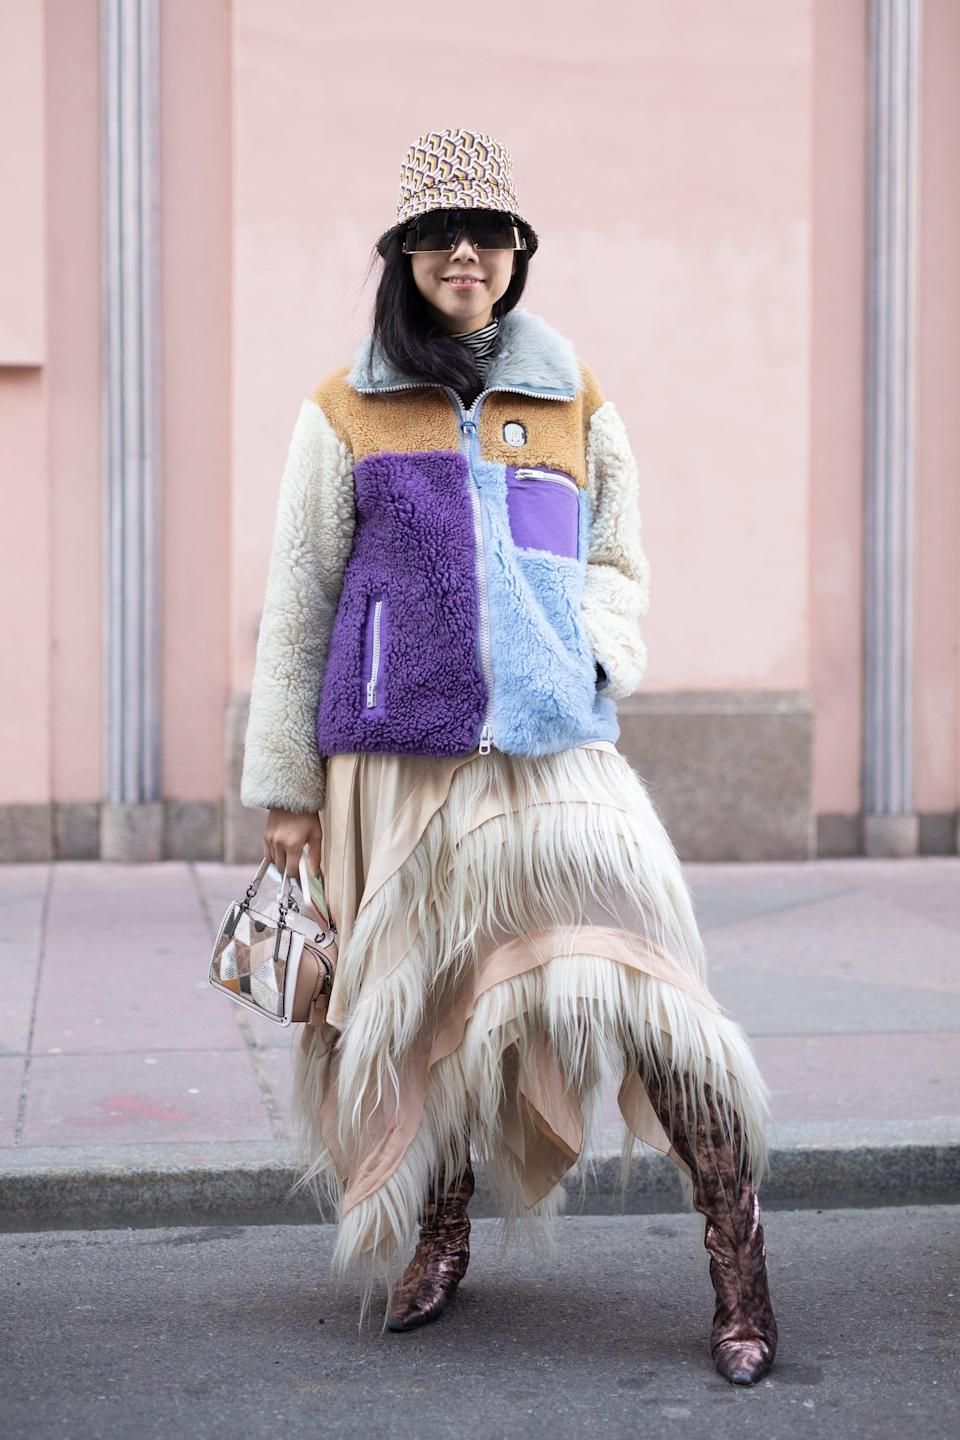 <p>This athleisure trend has officially made it to the runways, infusing itself into the collections of some of our most beloved of high-fashion designers. 3.1 Phillip Lim's collection included those of the short-sleeved variety, Sandy Liang mixed materials for a true patchwork look, and we saw classic colorblocking at Coach - like we remember from our childhood. </p>